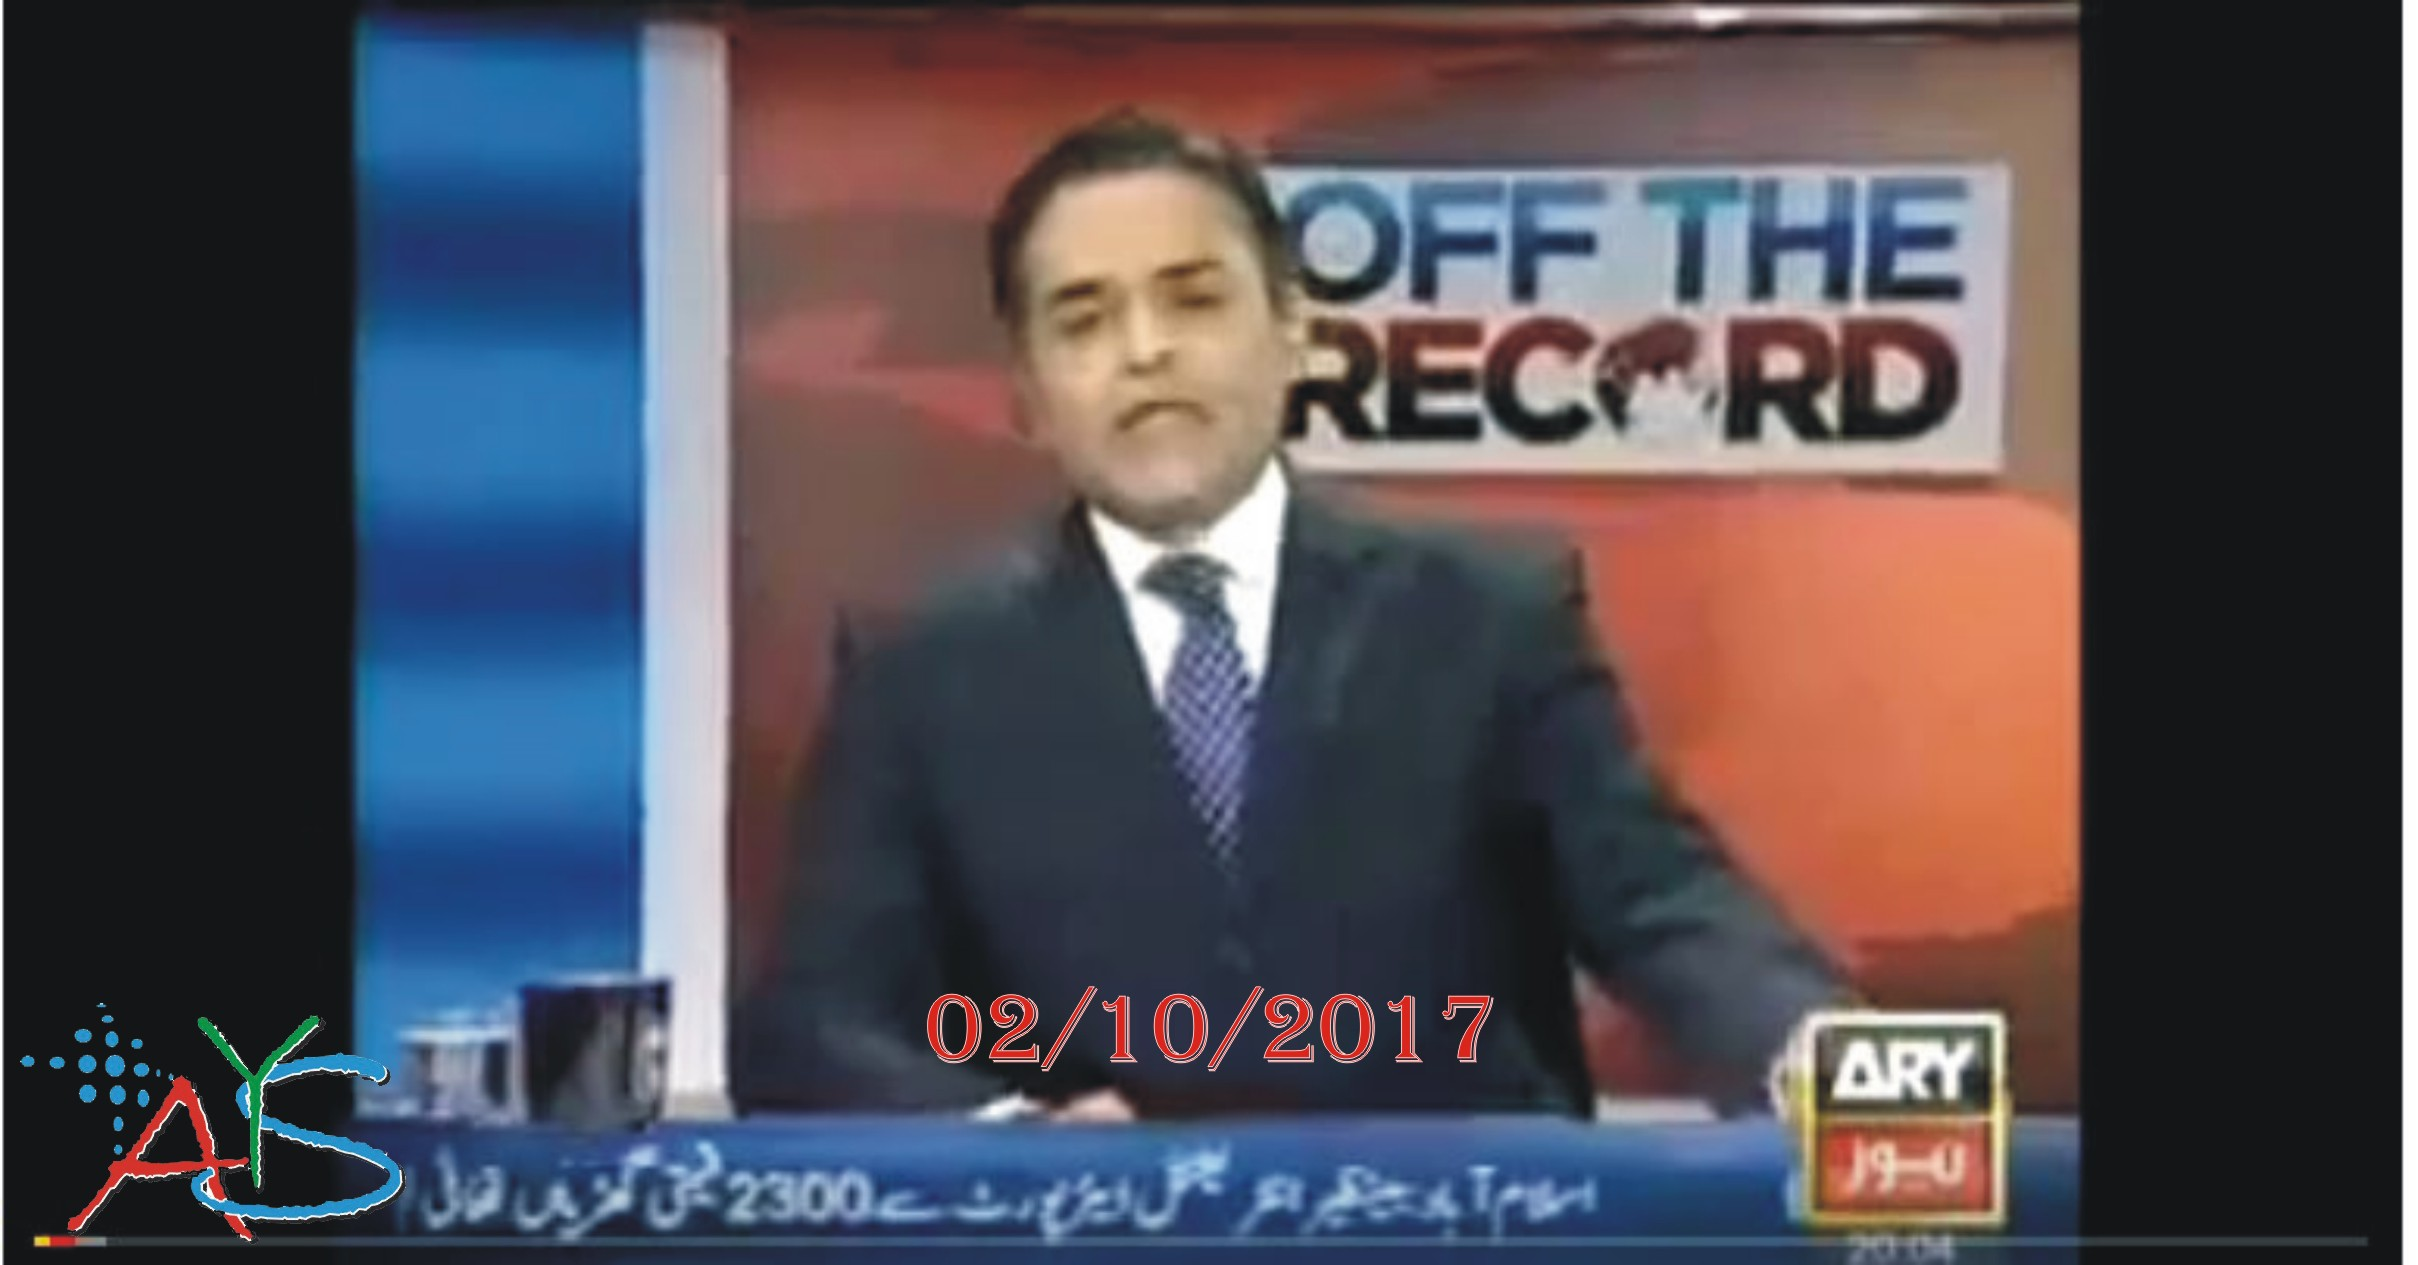 02 Oct 2017 - Off The Record with Kashif Abbasi 2nd October 2017